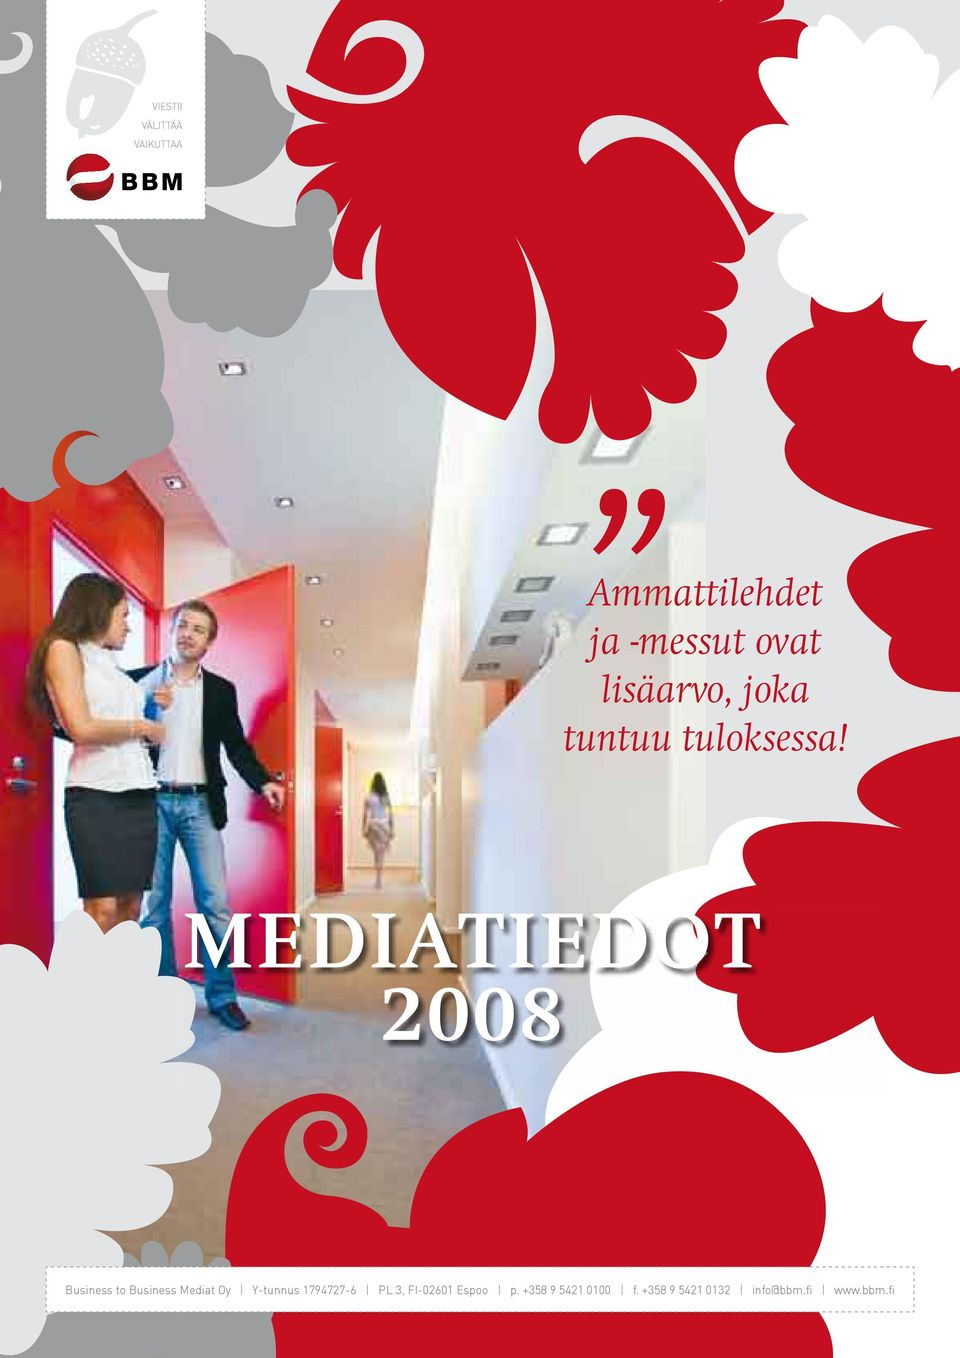 Mediatiedot 2008 Business to Business Mediat Oy